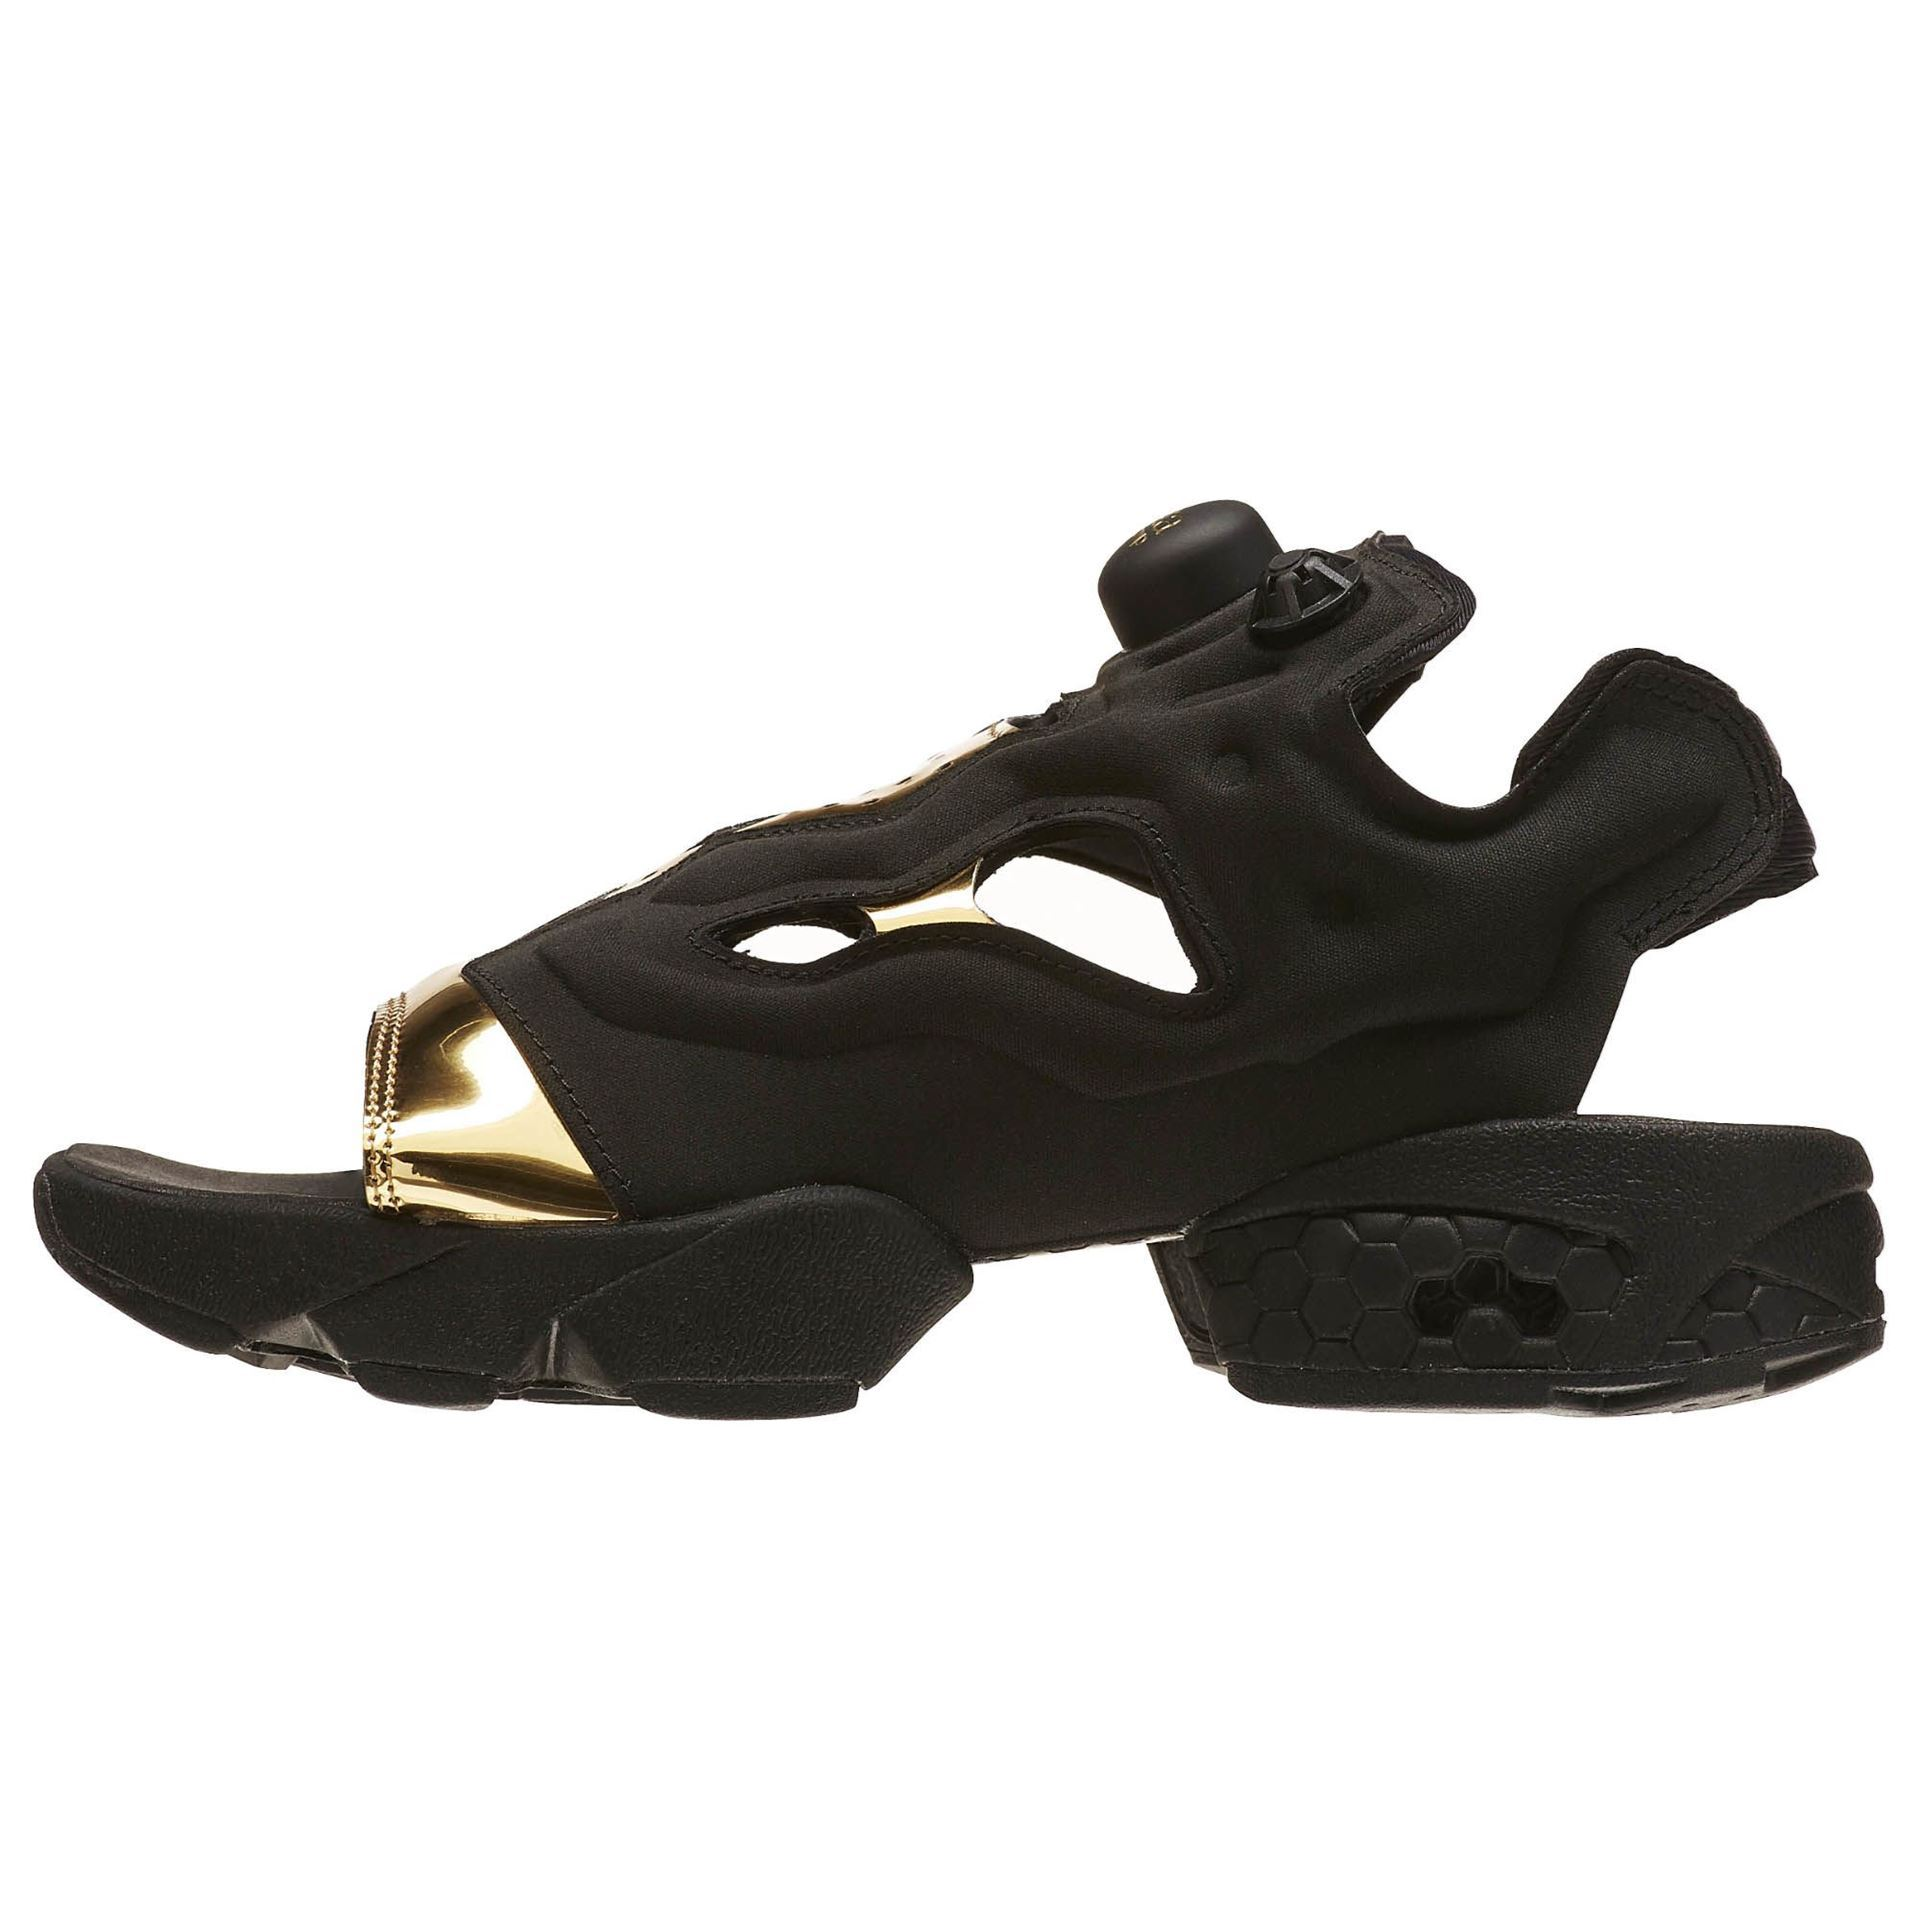 3fcd3e55a3 ... Picture of instapump Fury Sandal Womens Black/Gold